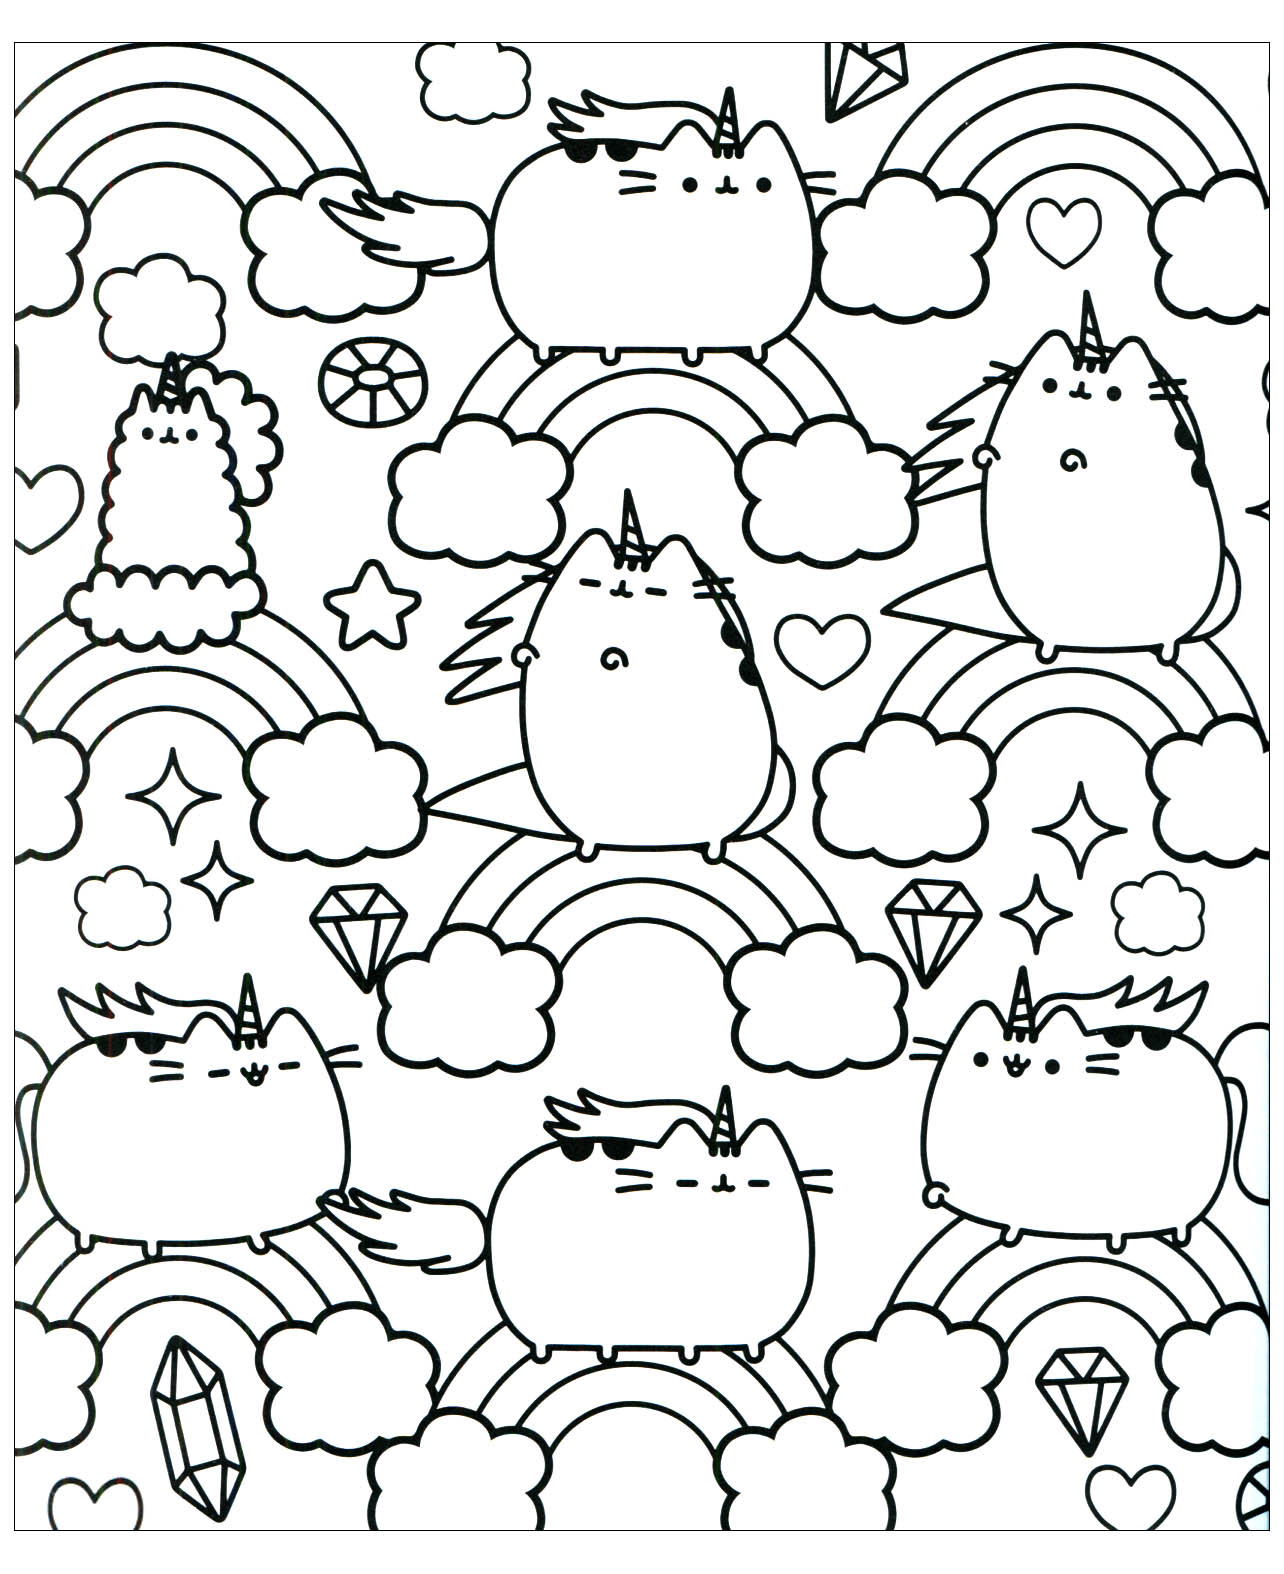 Kawaii Coloring Page To Download For Free